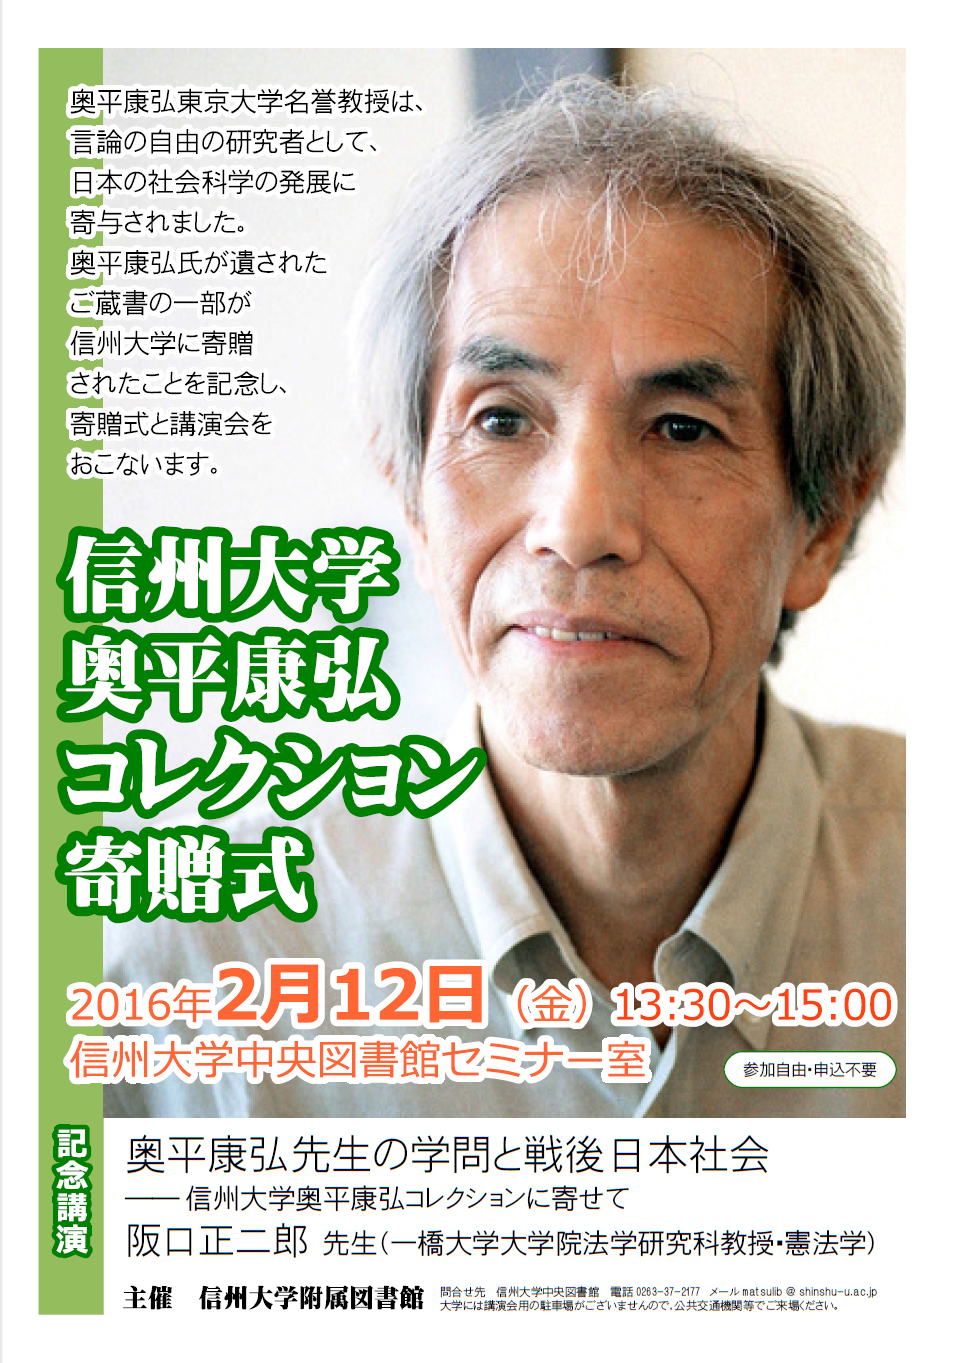 http://www.shinshu-u.ac.jp/institution/library/matsumoto/e609e6ca1dffe29476a95d1a51ed5045.png